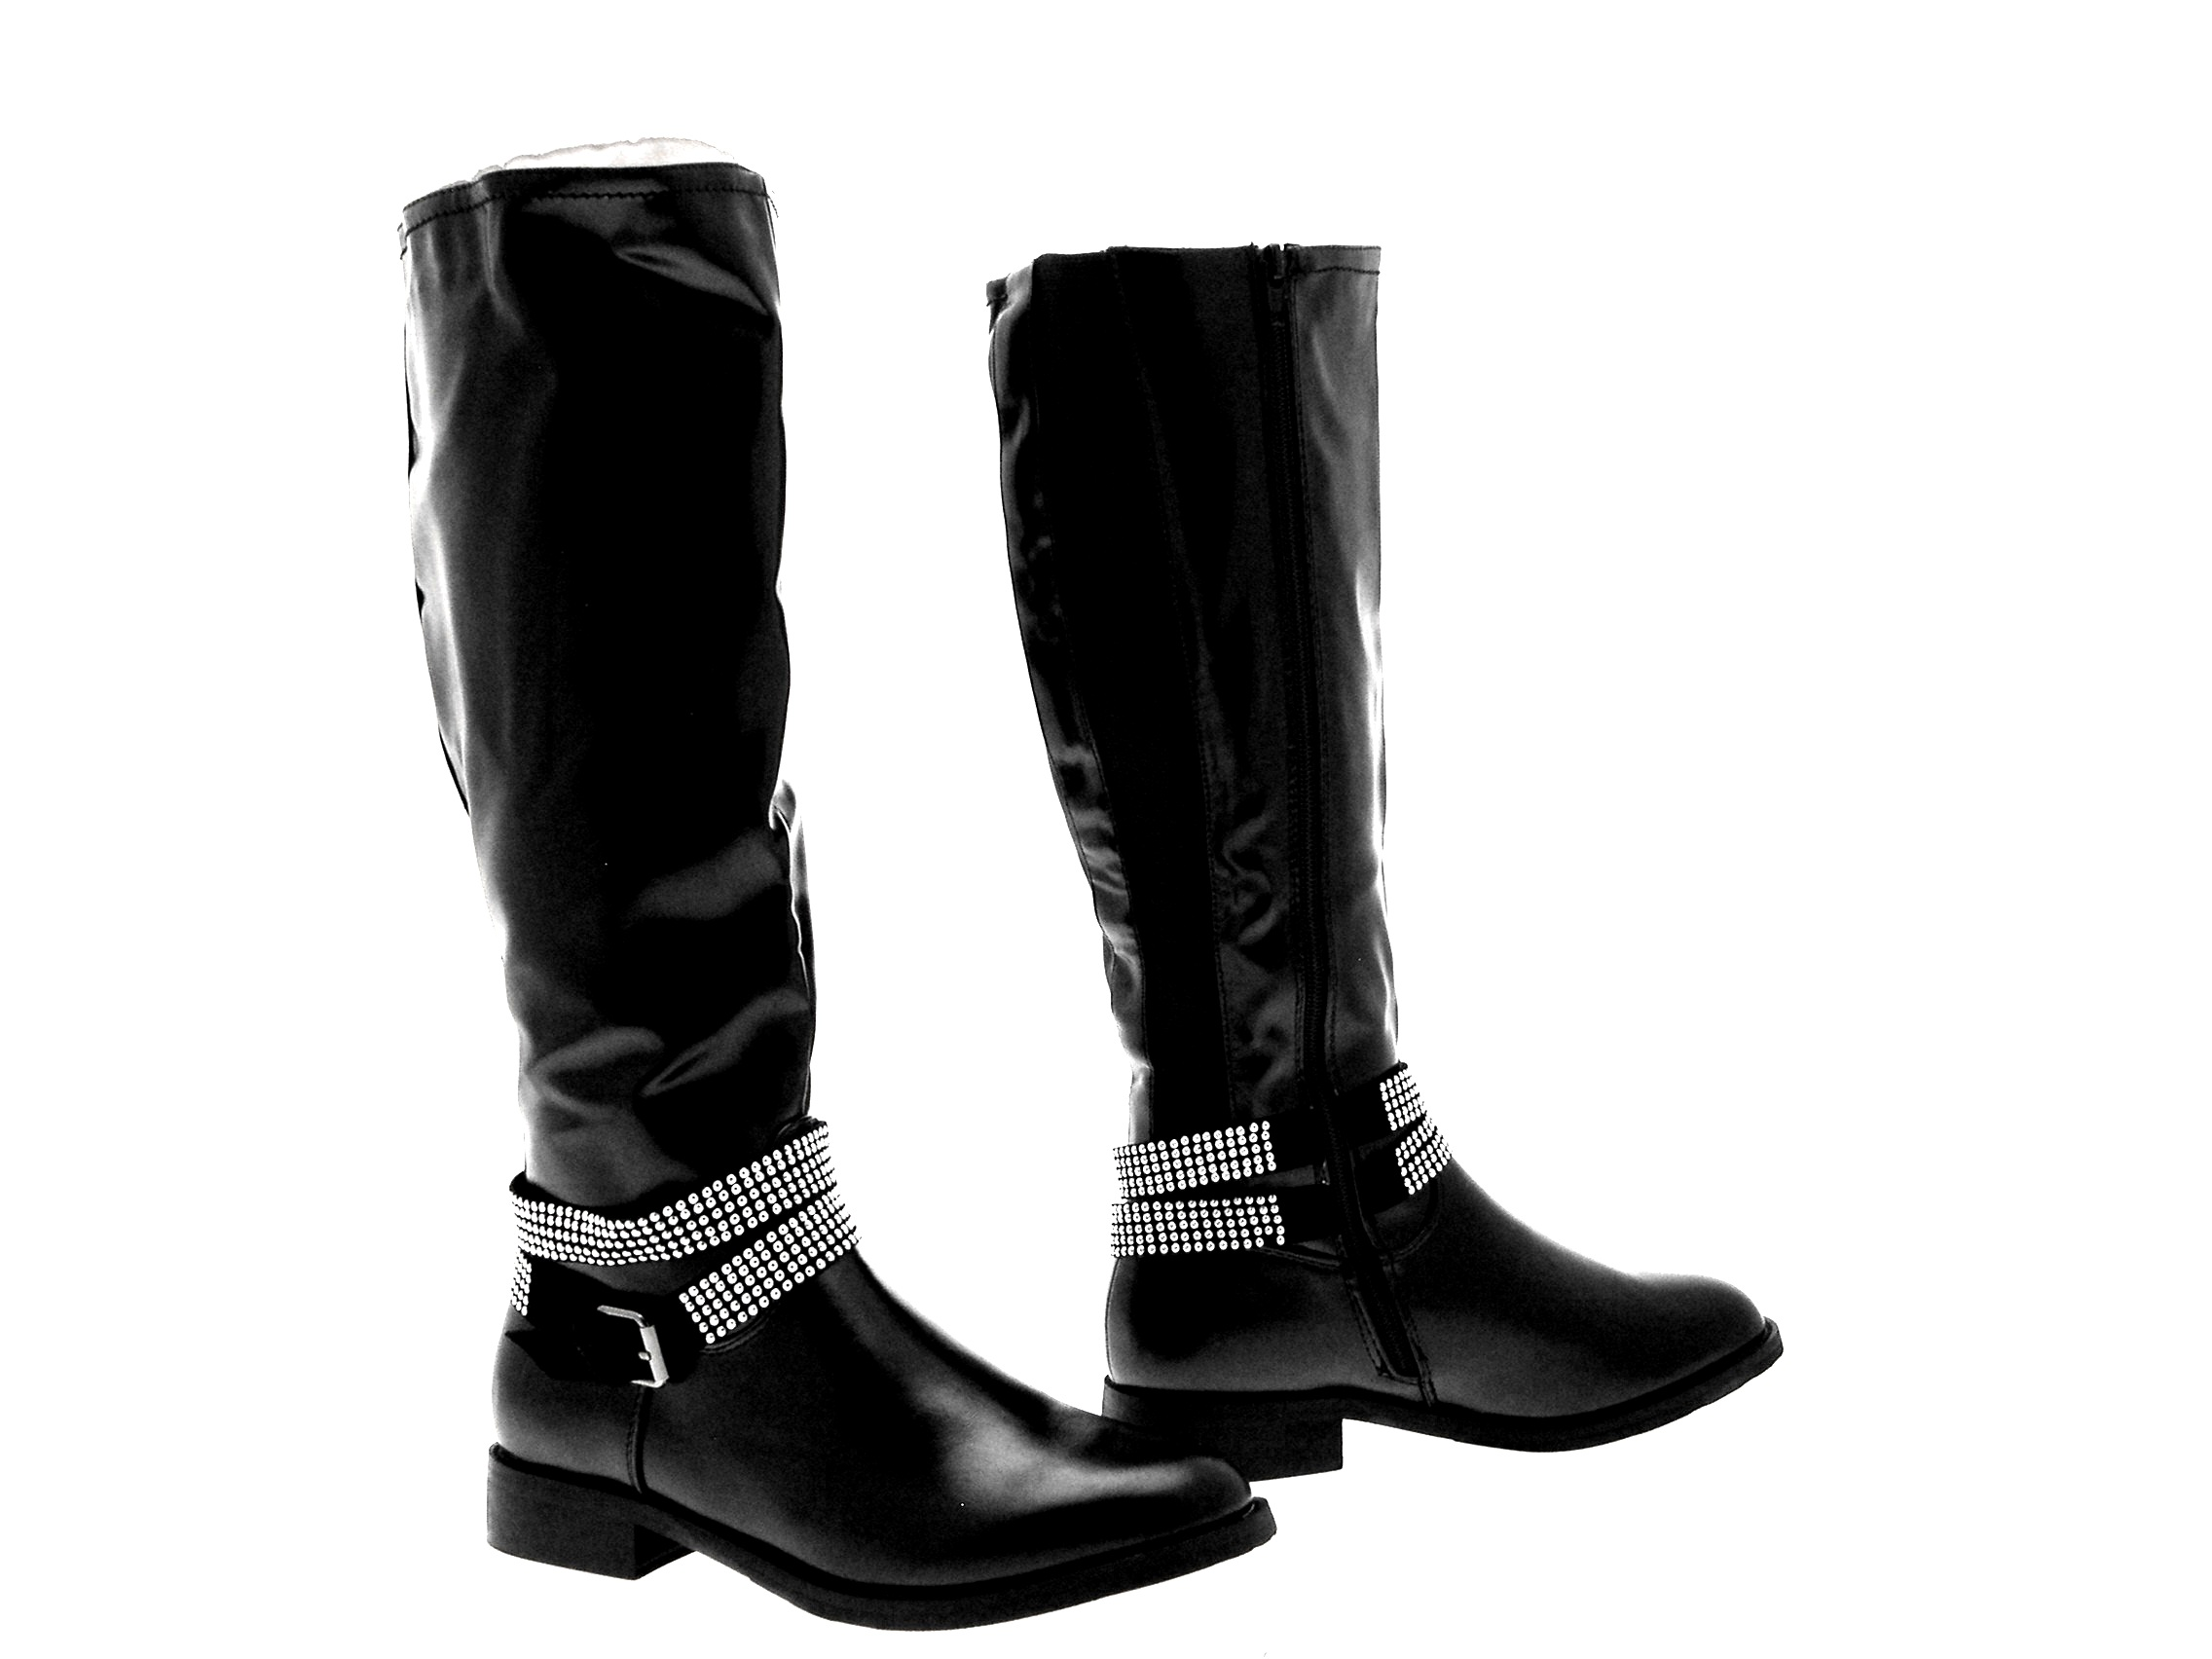 Thigh High Boots For Women and Knee High Boots plus Women Ankle Boots, Were you will find large selection of women's boots in all assorted colors and sizes.